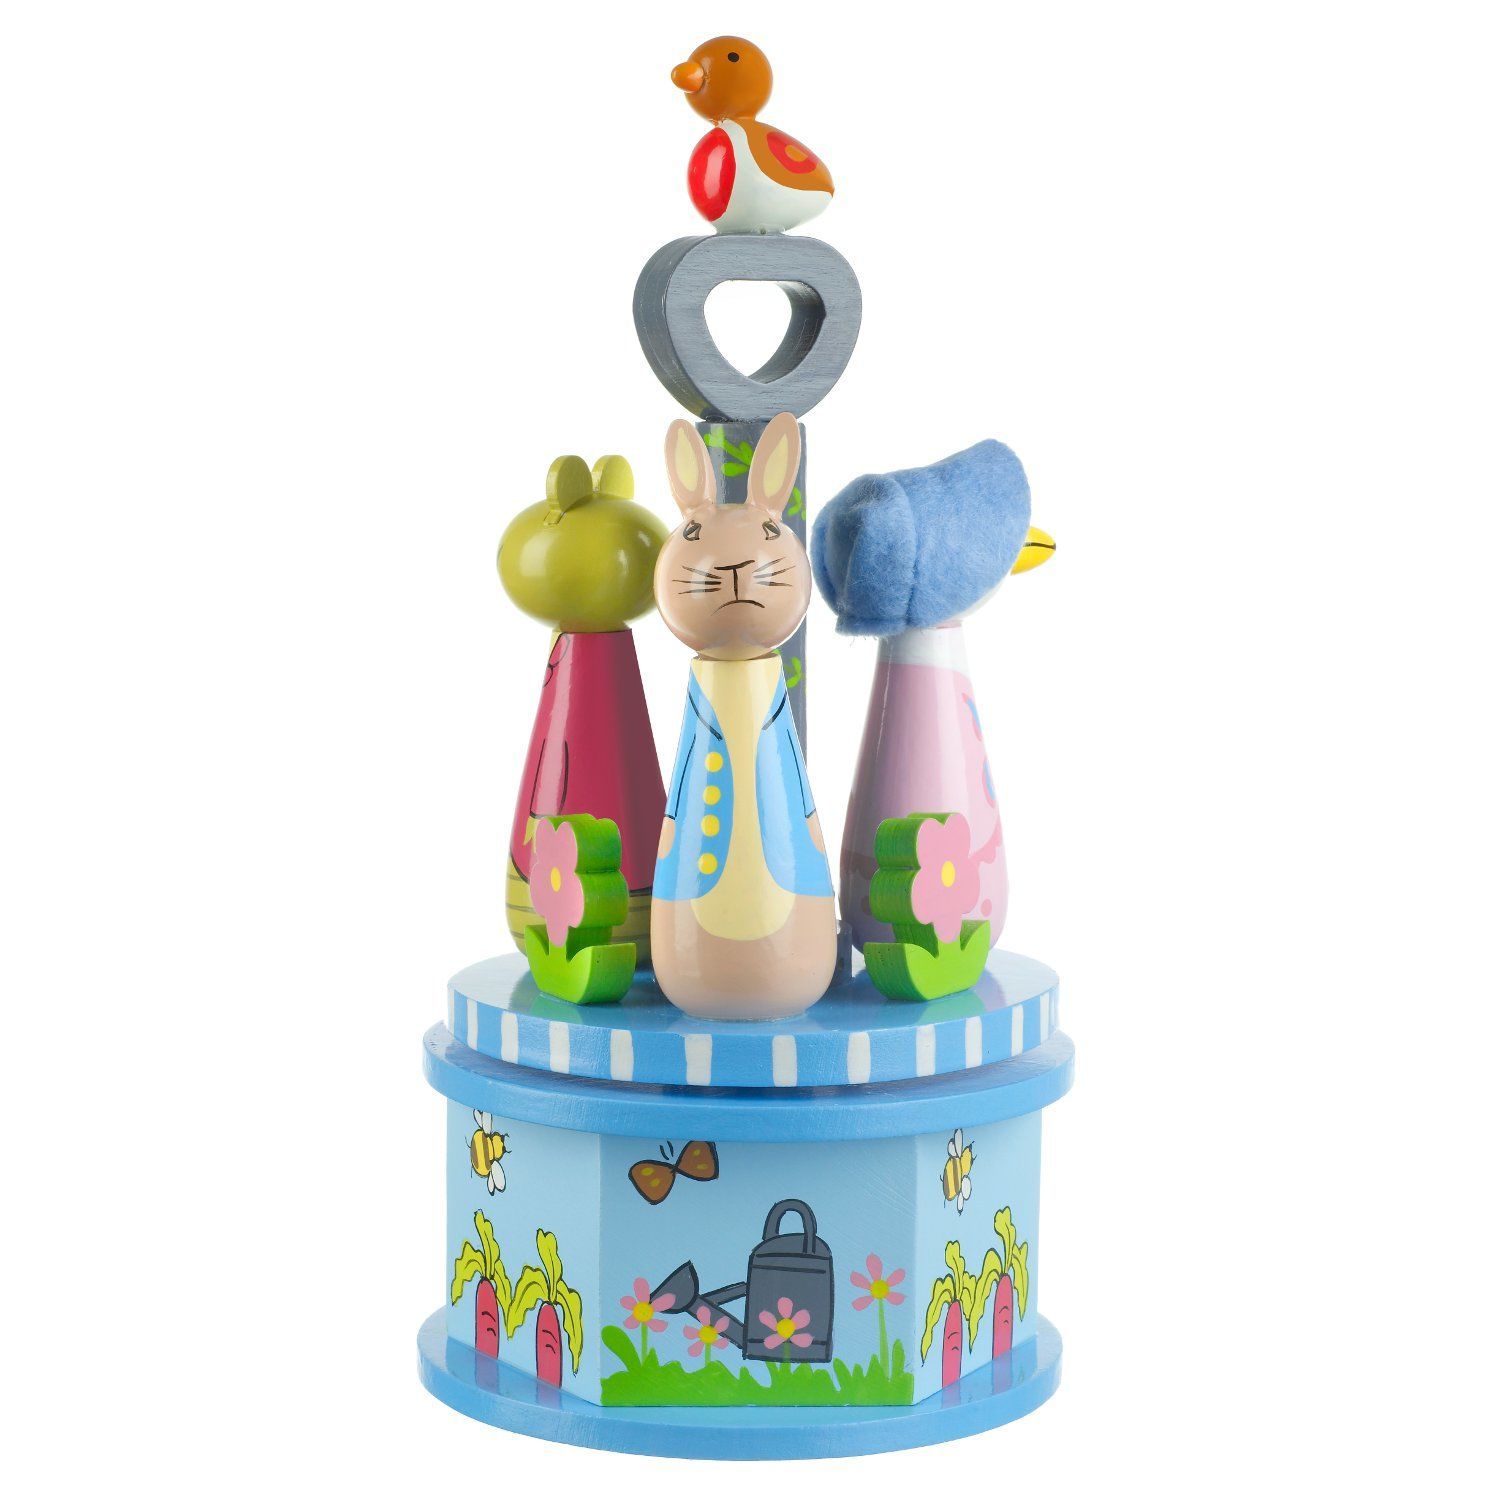 Peter Rabbit Peter Rabbit Wooden Musical Carousel